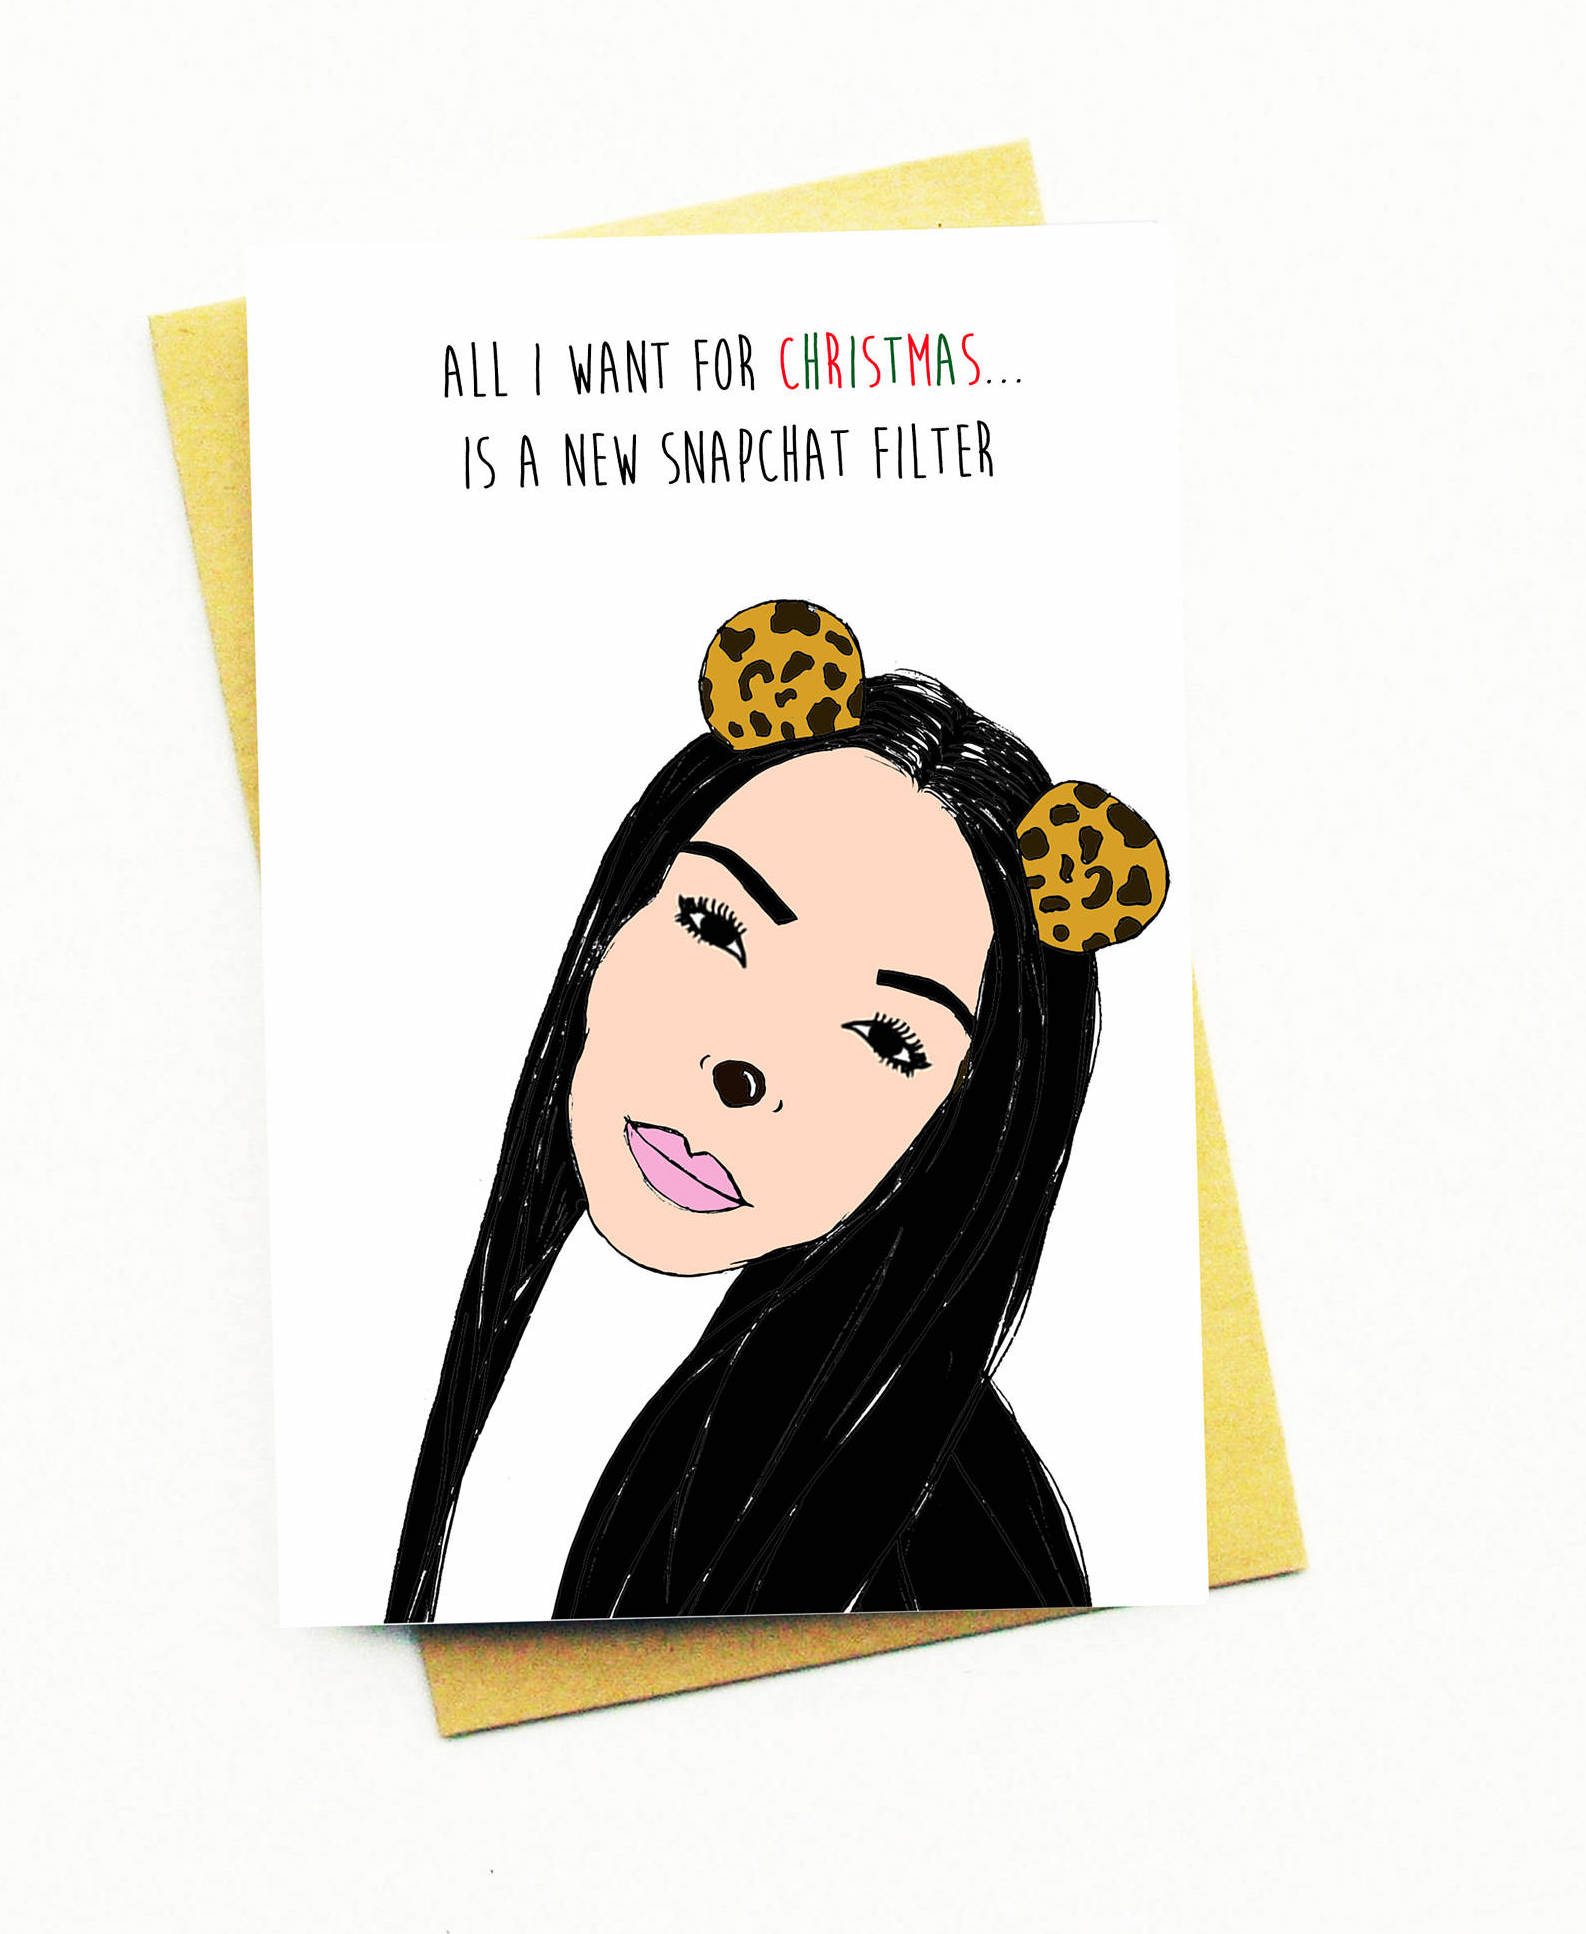 Funny Christmas Cards: Kardashians and those darn snapchat filters ...